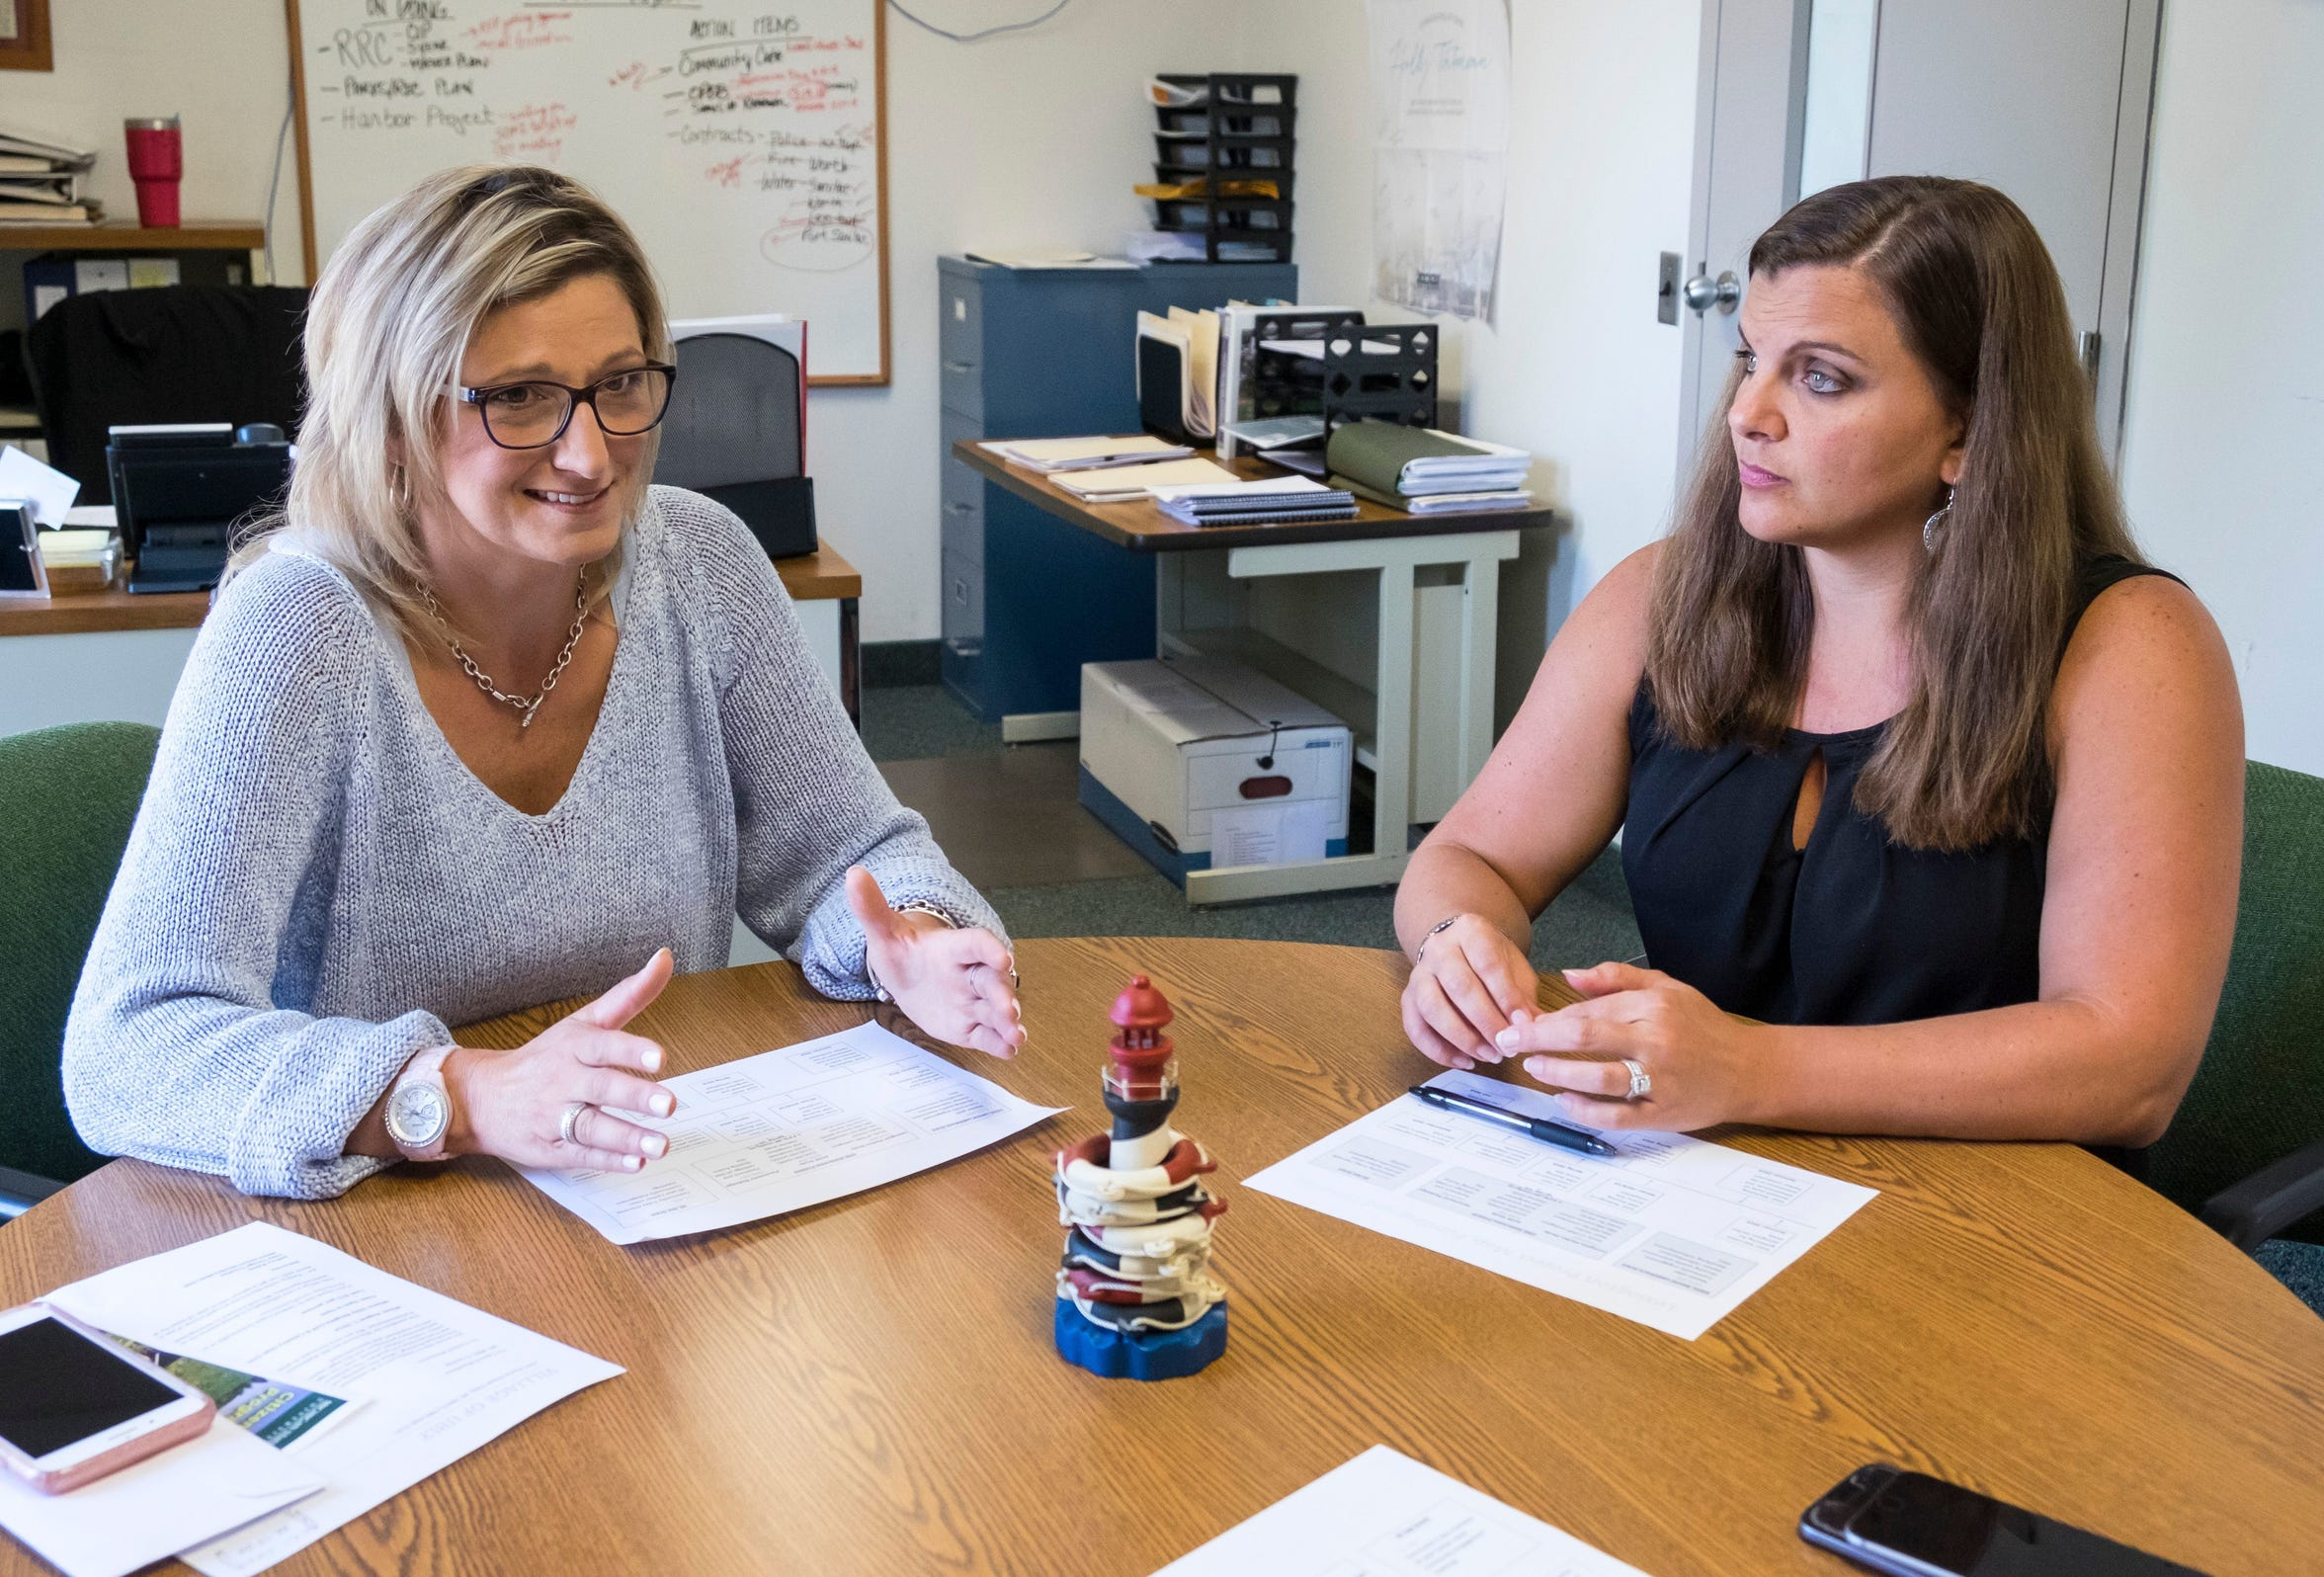 Lexington Village Manager Holly Tatman, right, talks with Kristen Kaatz, the village's president, in her office in July 2018. Tatman began the job as manager last spring and may have the longest commute among administrators in nearby towns, as she resides in St. Clair.